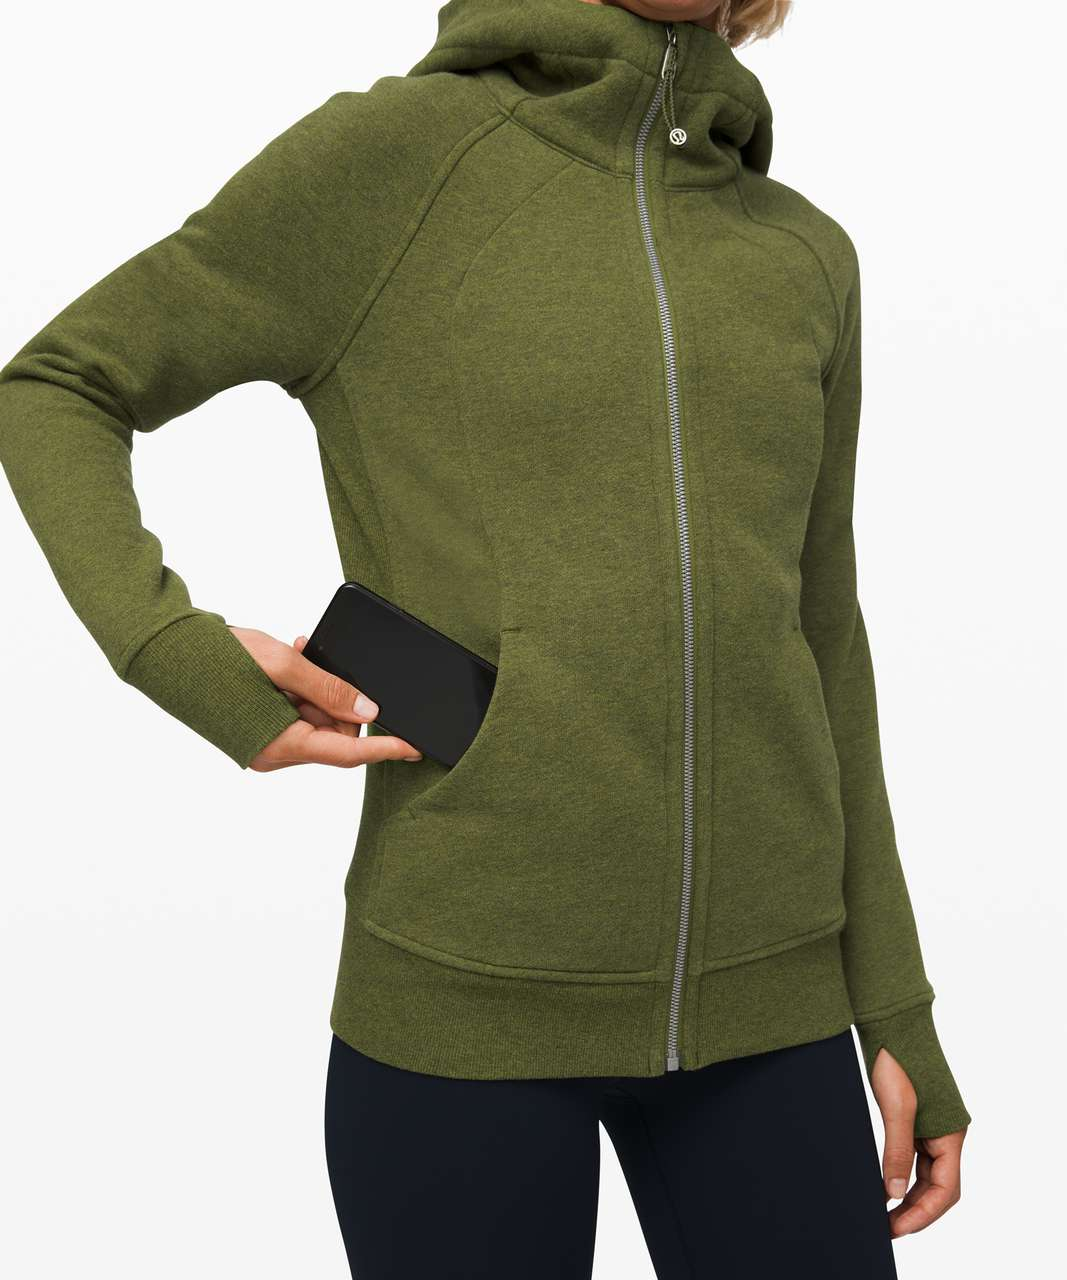 Lululemon Scuba Hoodie *Light Cotton Fleece - Heathered Everglades